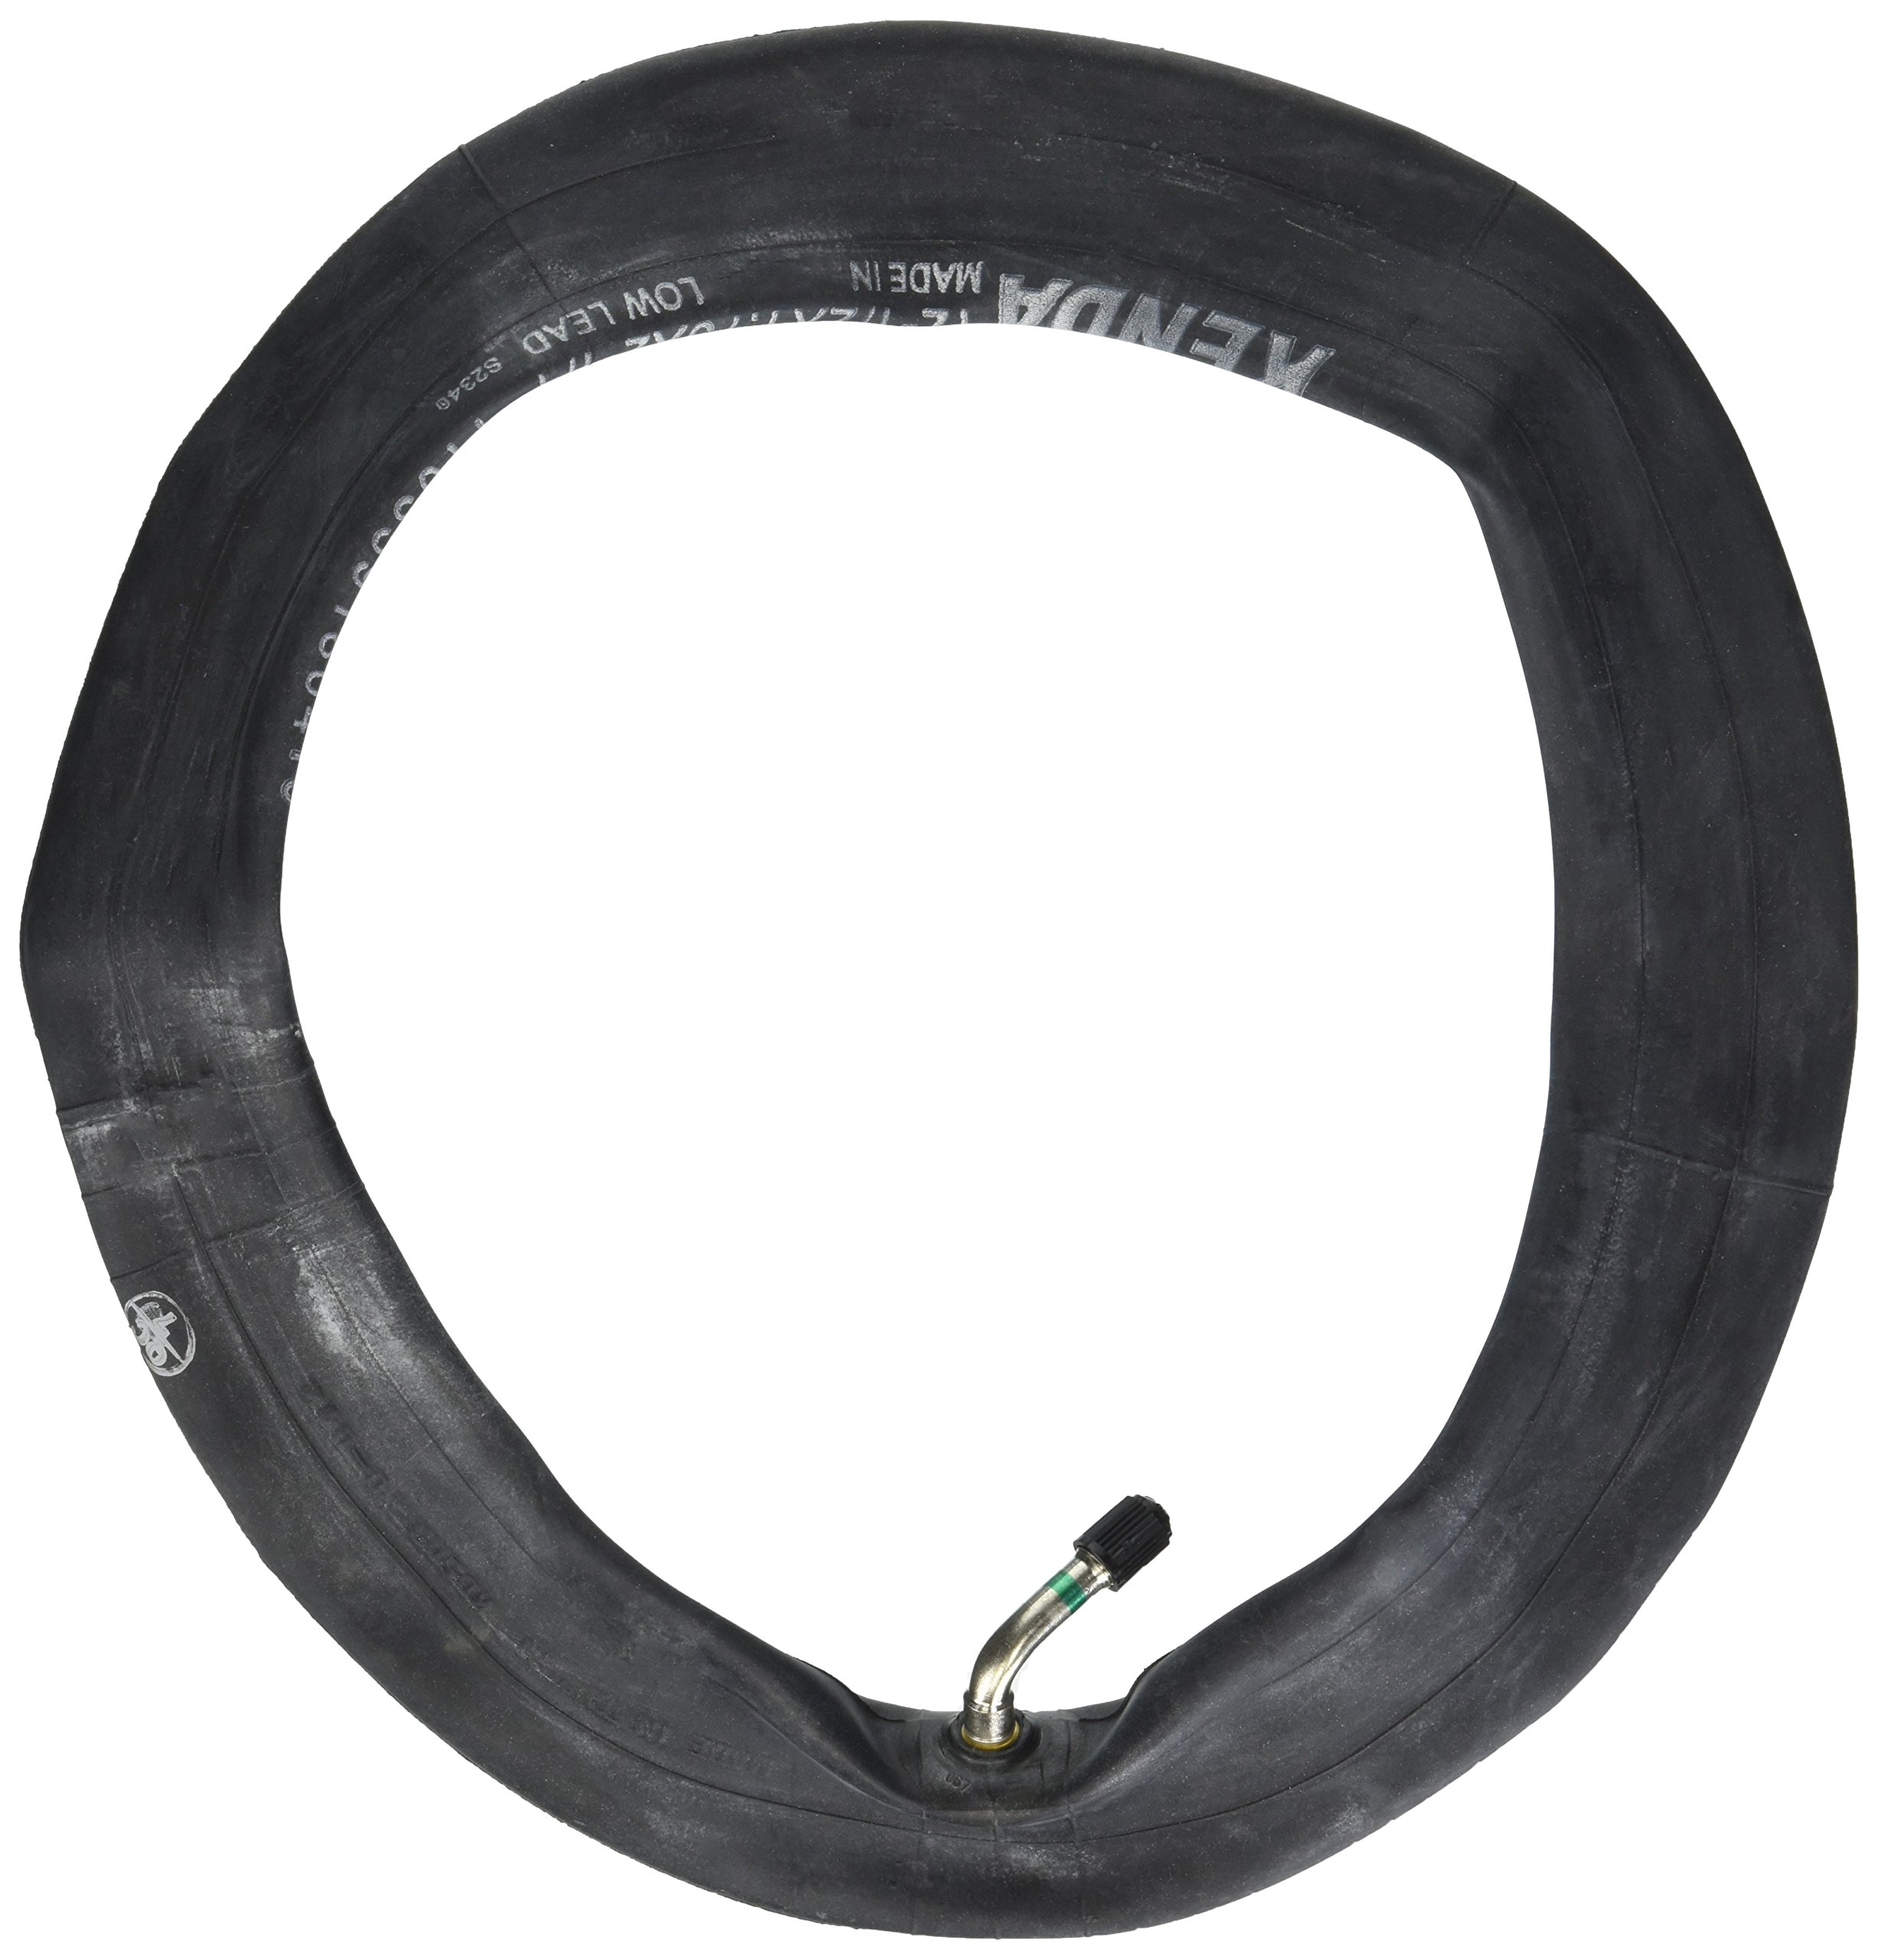 12-1/2''x1.75-2-1/4'' Inner Tube - Replacement Tube for Trikke or other 12-1/2'' scooter or bicycle wheels by Kenda